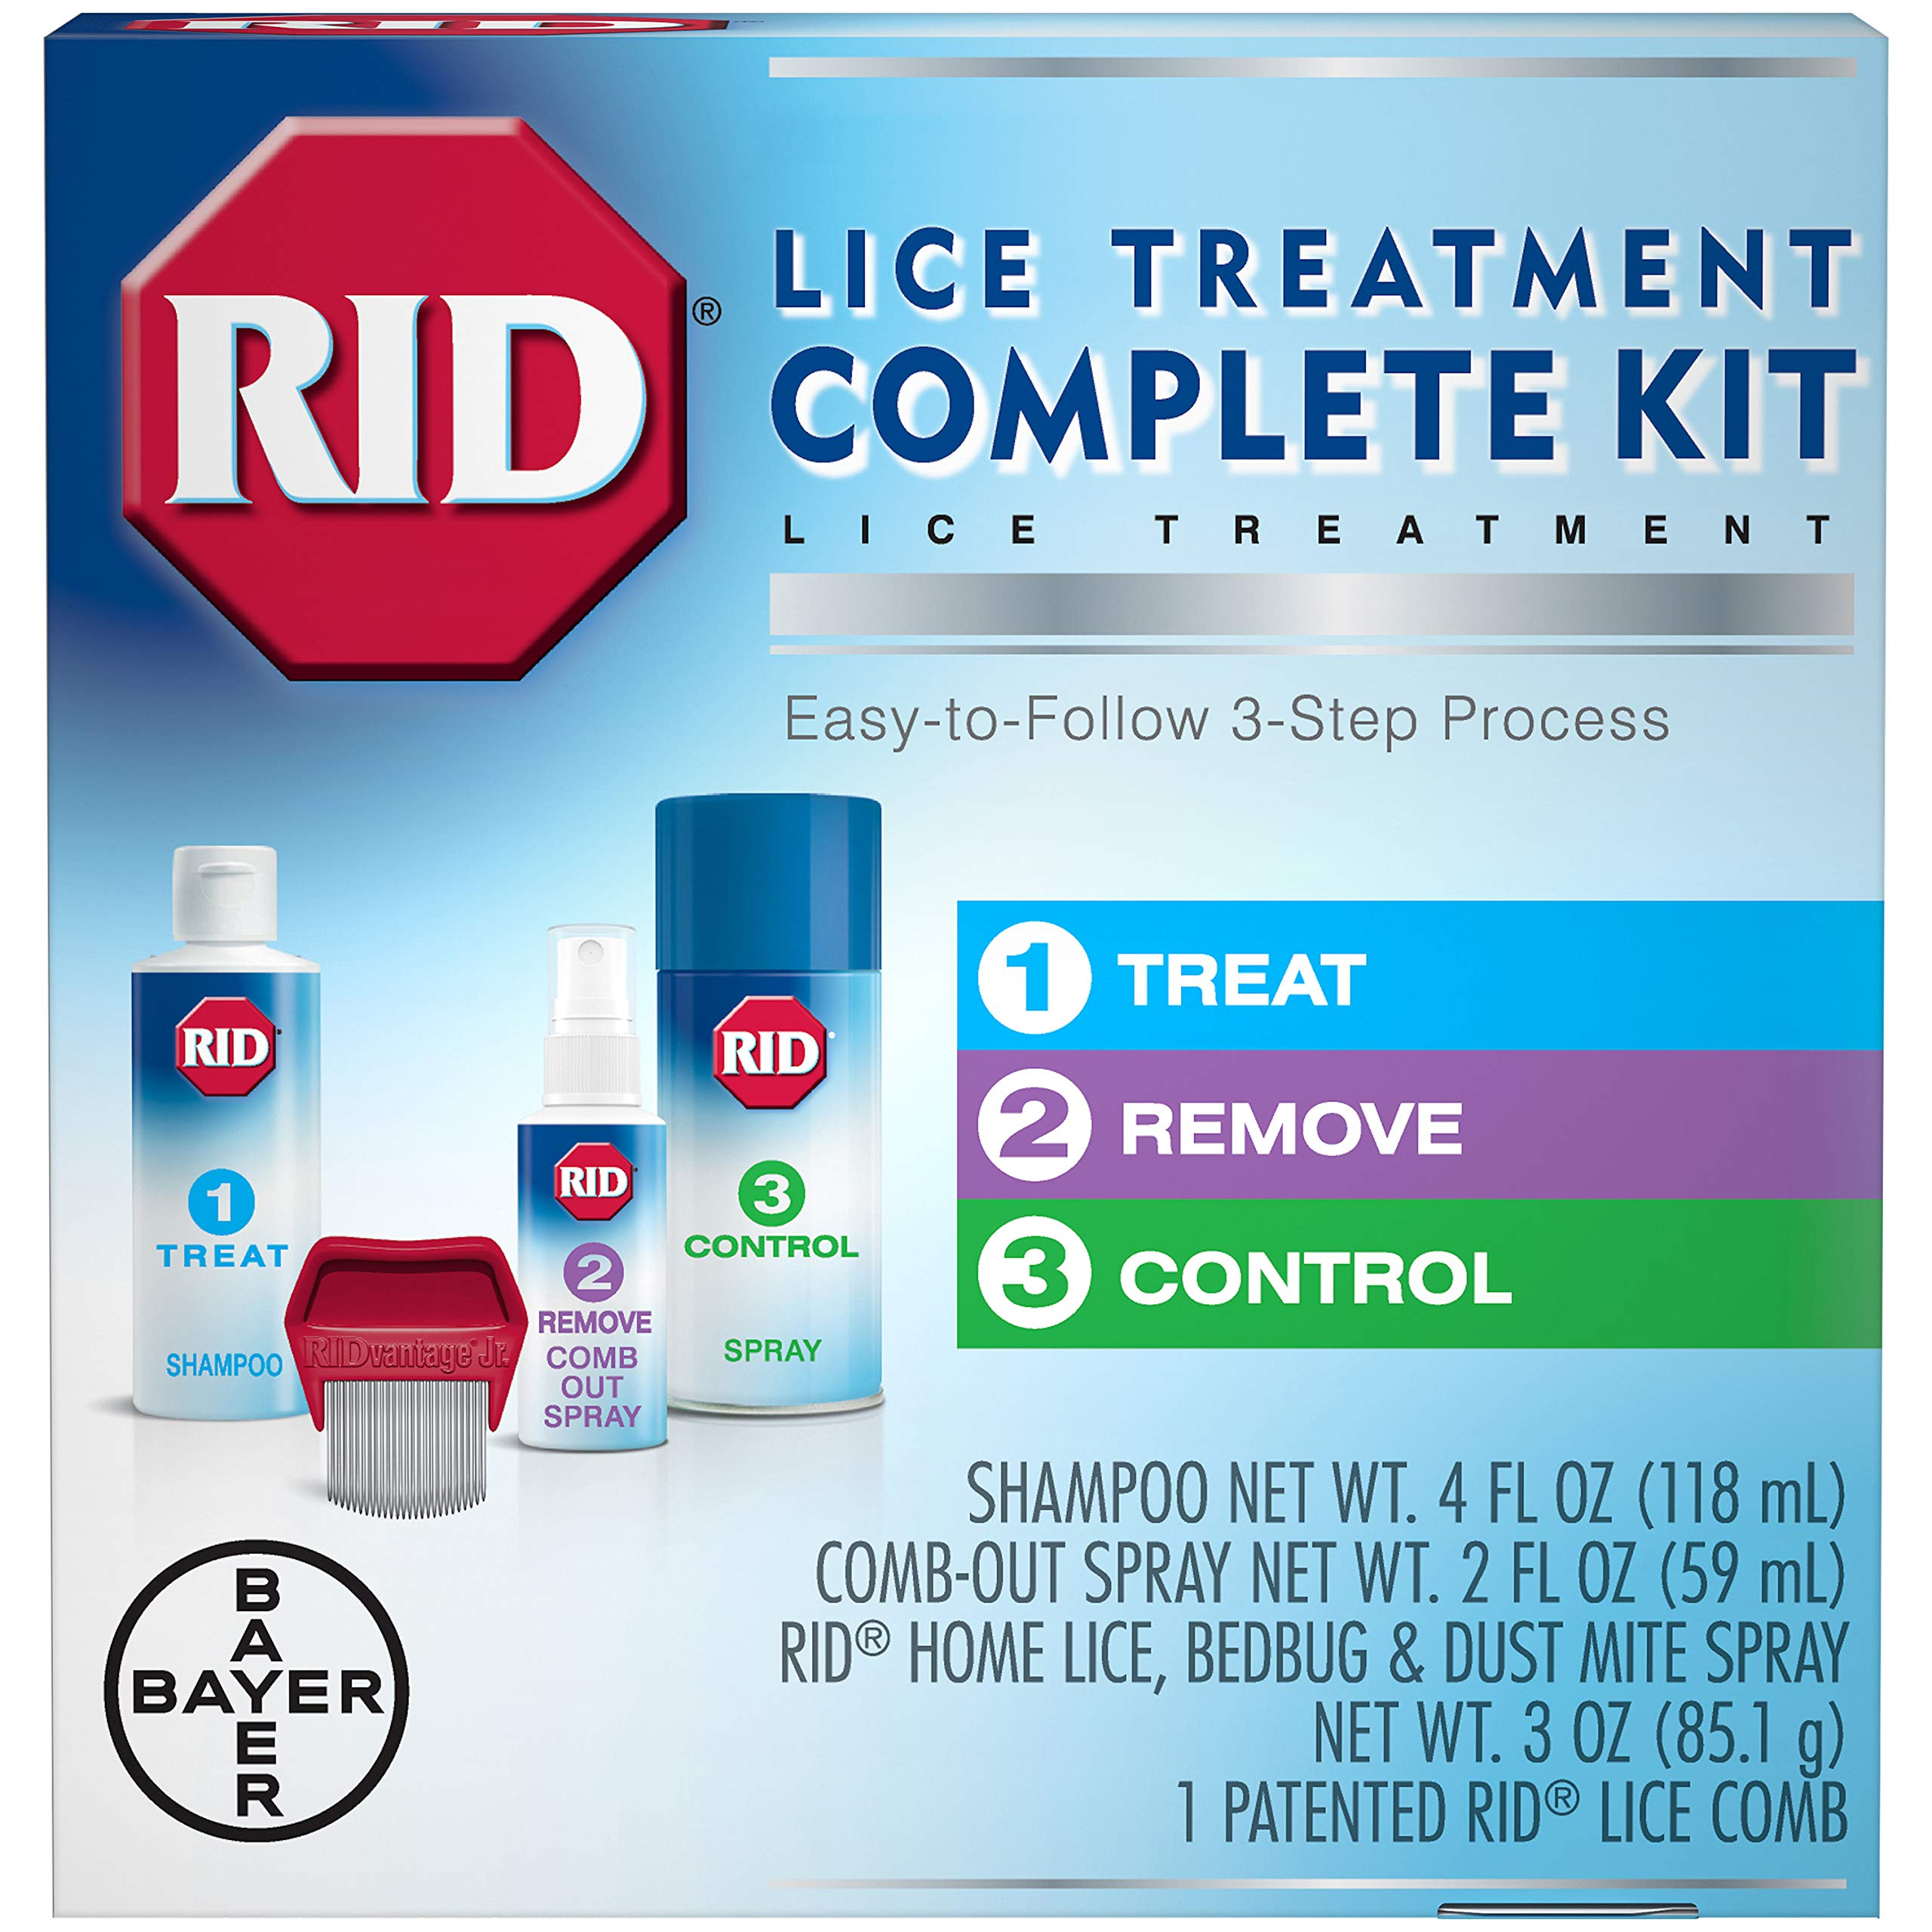 RID Lice Treatment Complete Kit, Includes 4 Fluid Ounces RID Lice Killing Shampoo, 2 Fluid Ounces Lice and Egg Comb-Out Spray, Lice Comb, and 3 Ounces RID Home Lice, Bedbug & Dust Mite Home Spray by Rid